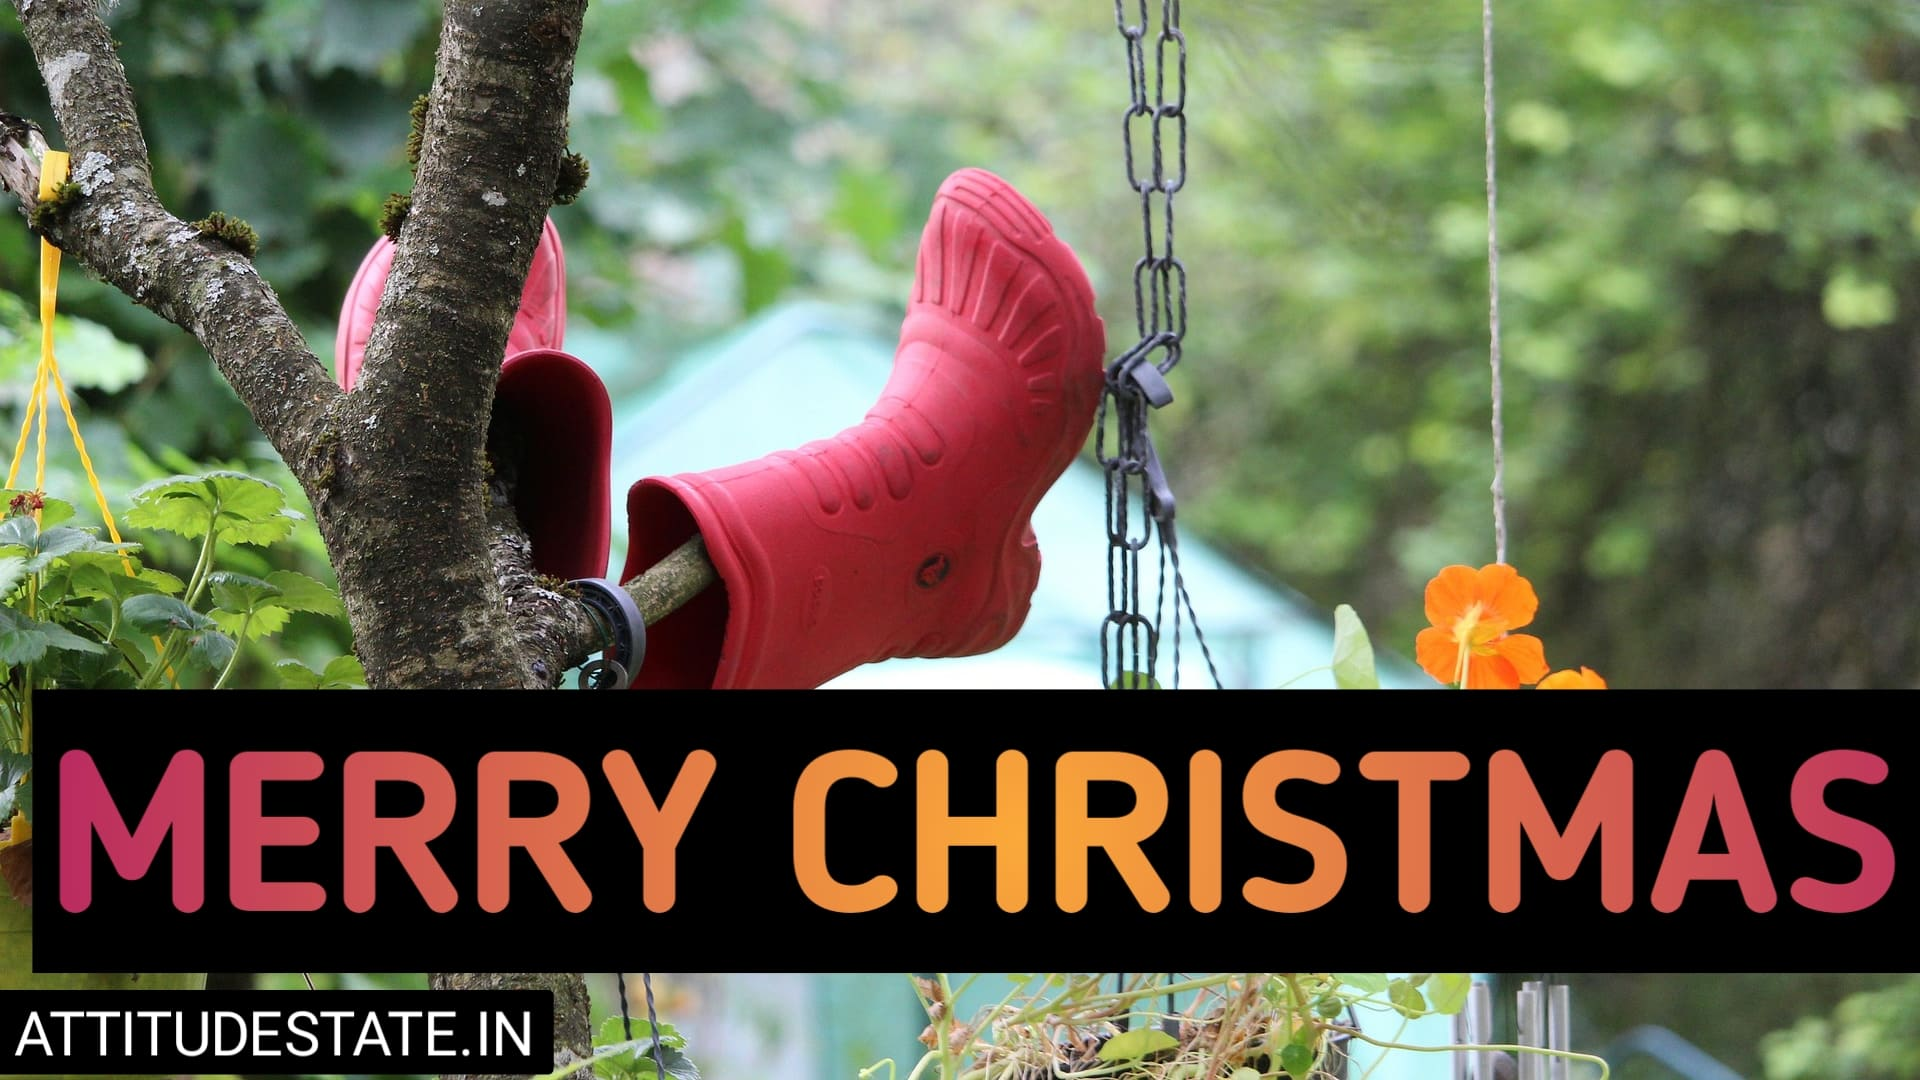 funny quotes on merry christmas 2020